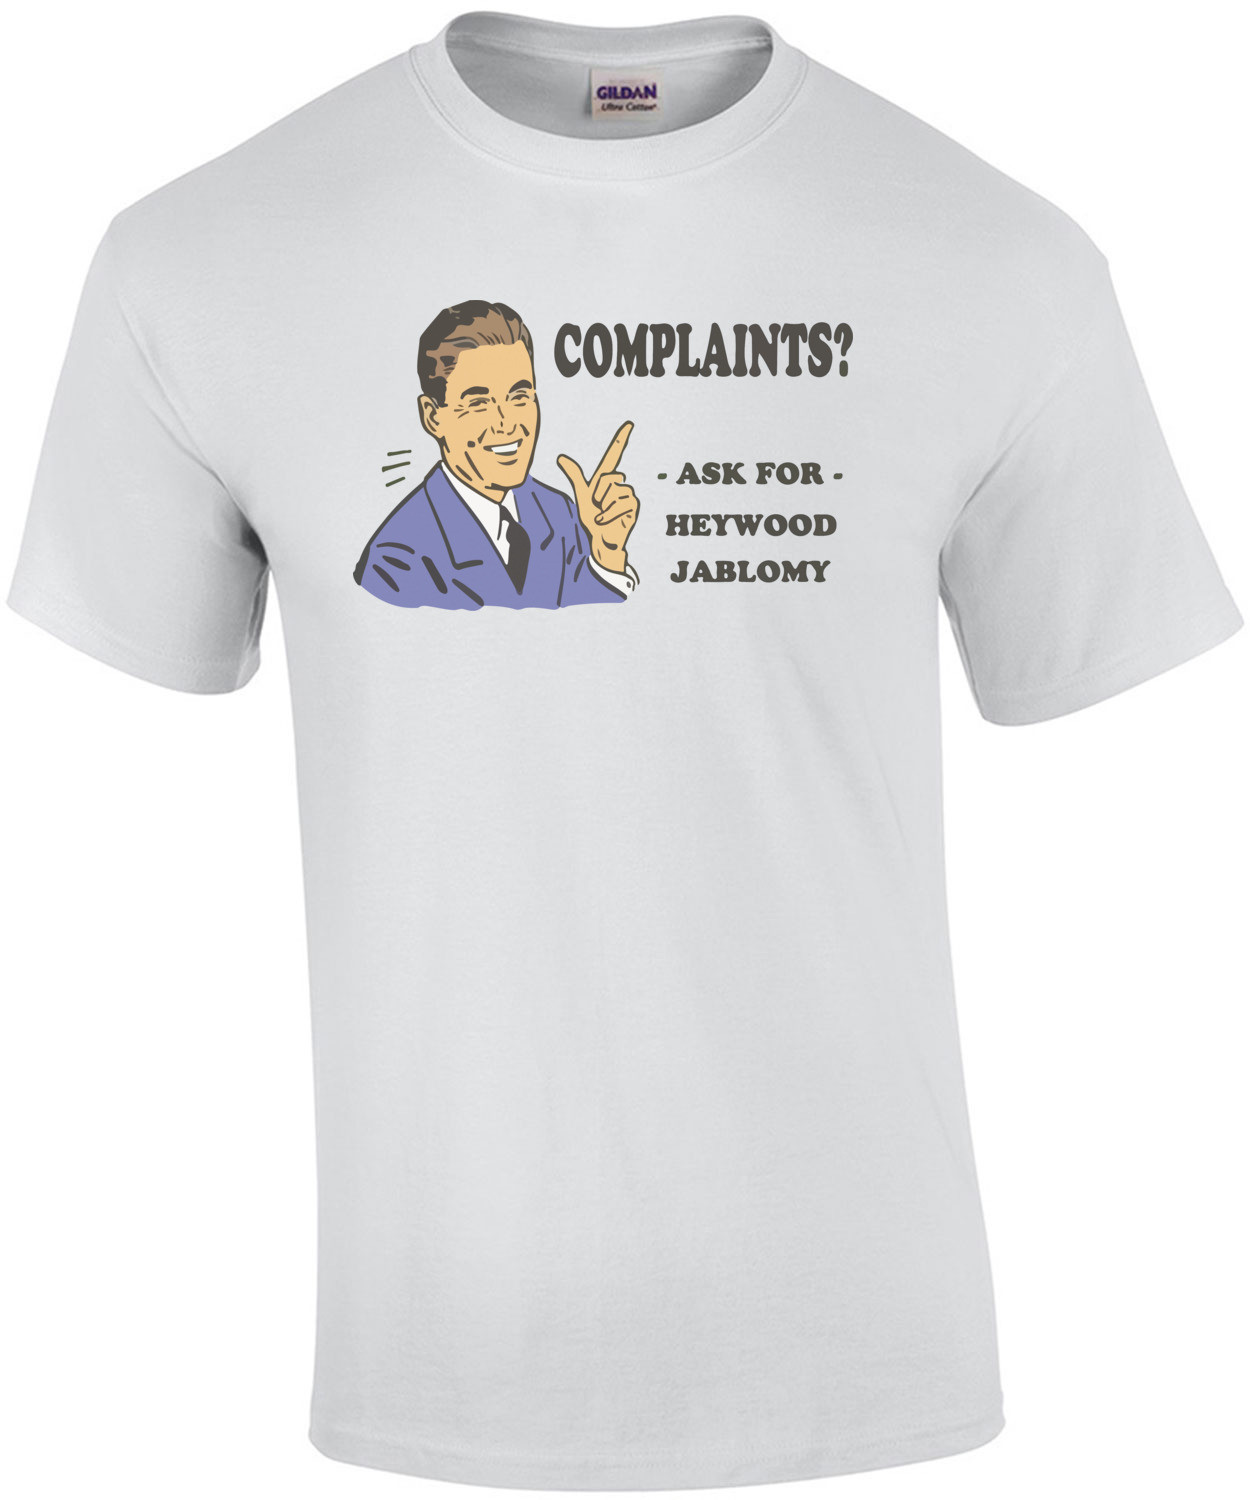 Complaints? Ask For Heywood Jablomy Funny T-Shirt